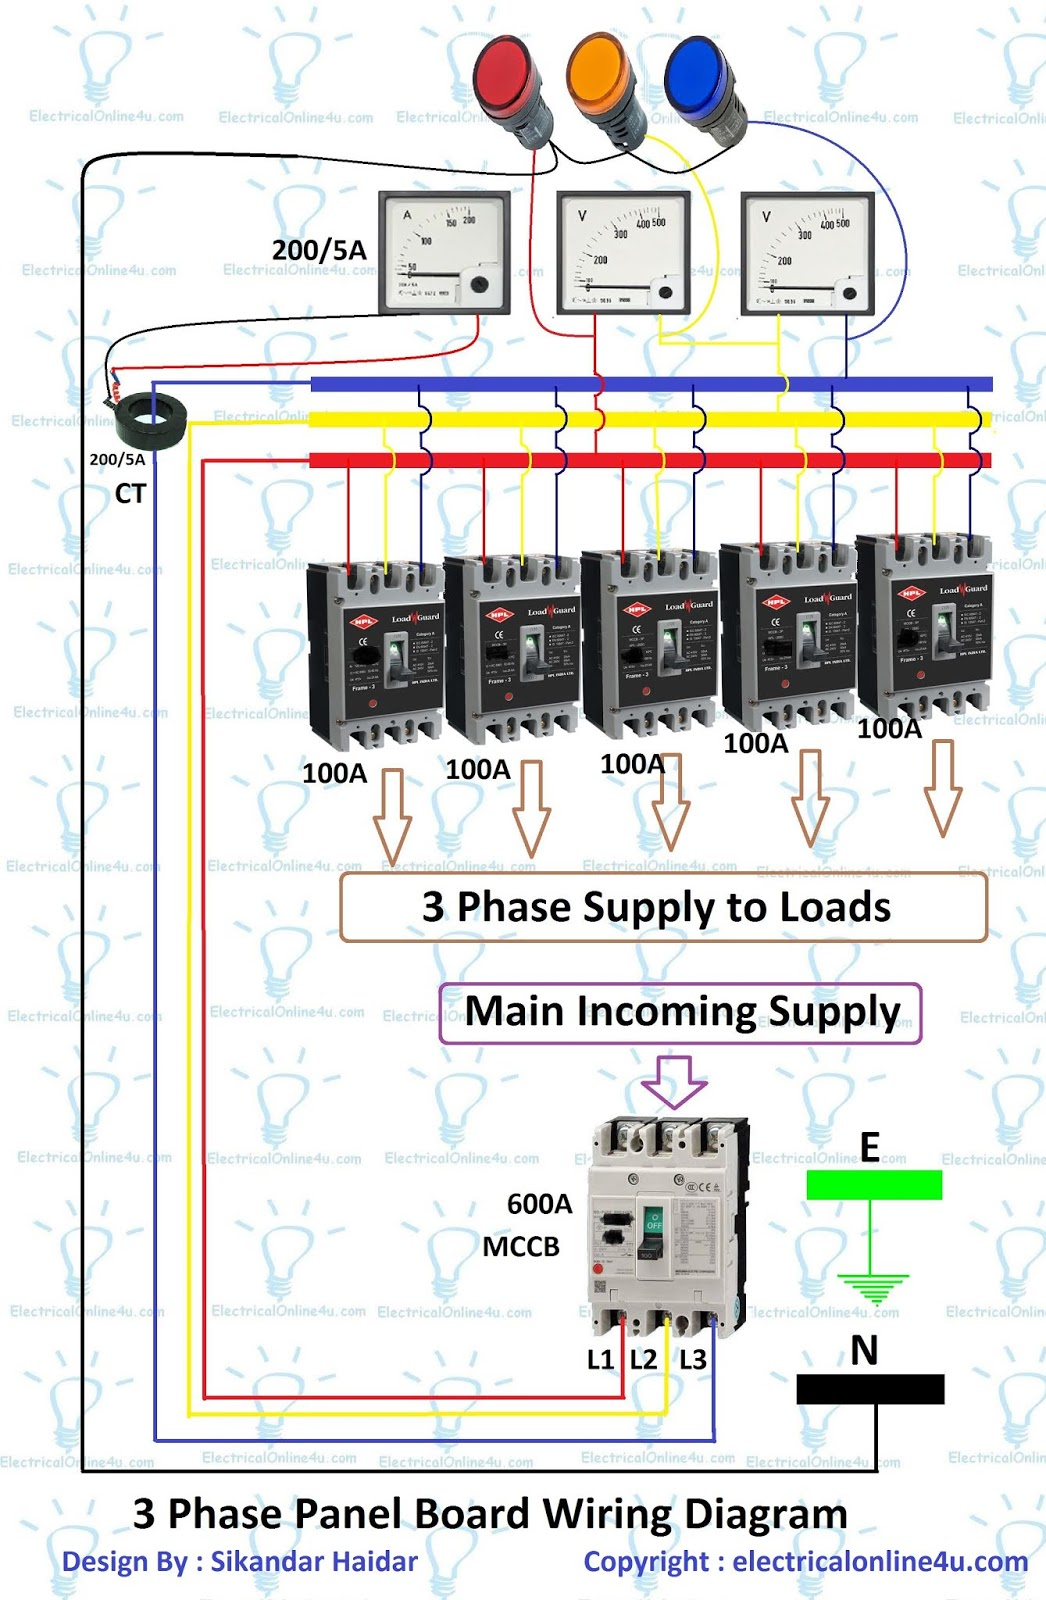 3 Phase Panel Board Wiring Diagram  Distribution Board